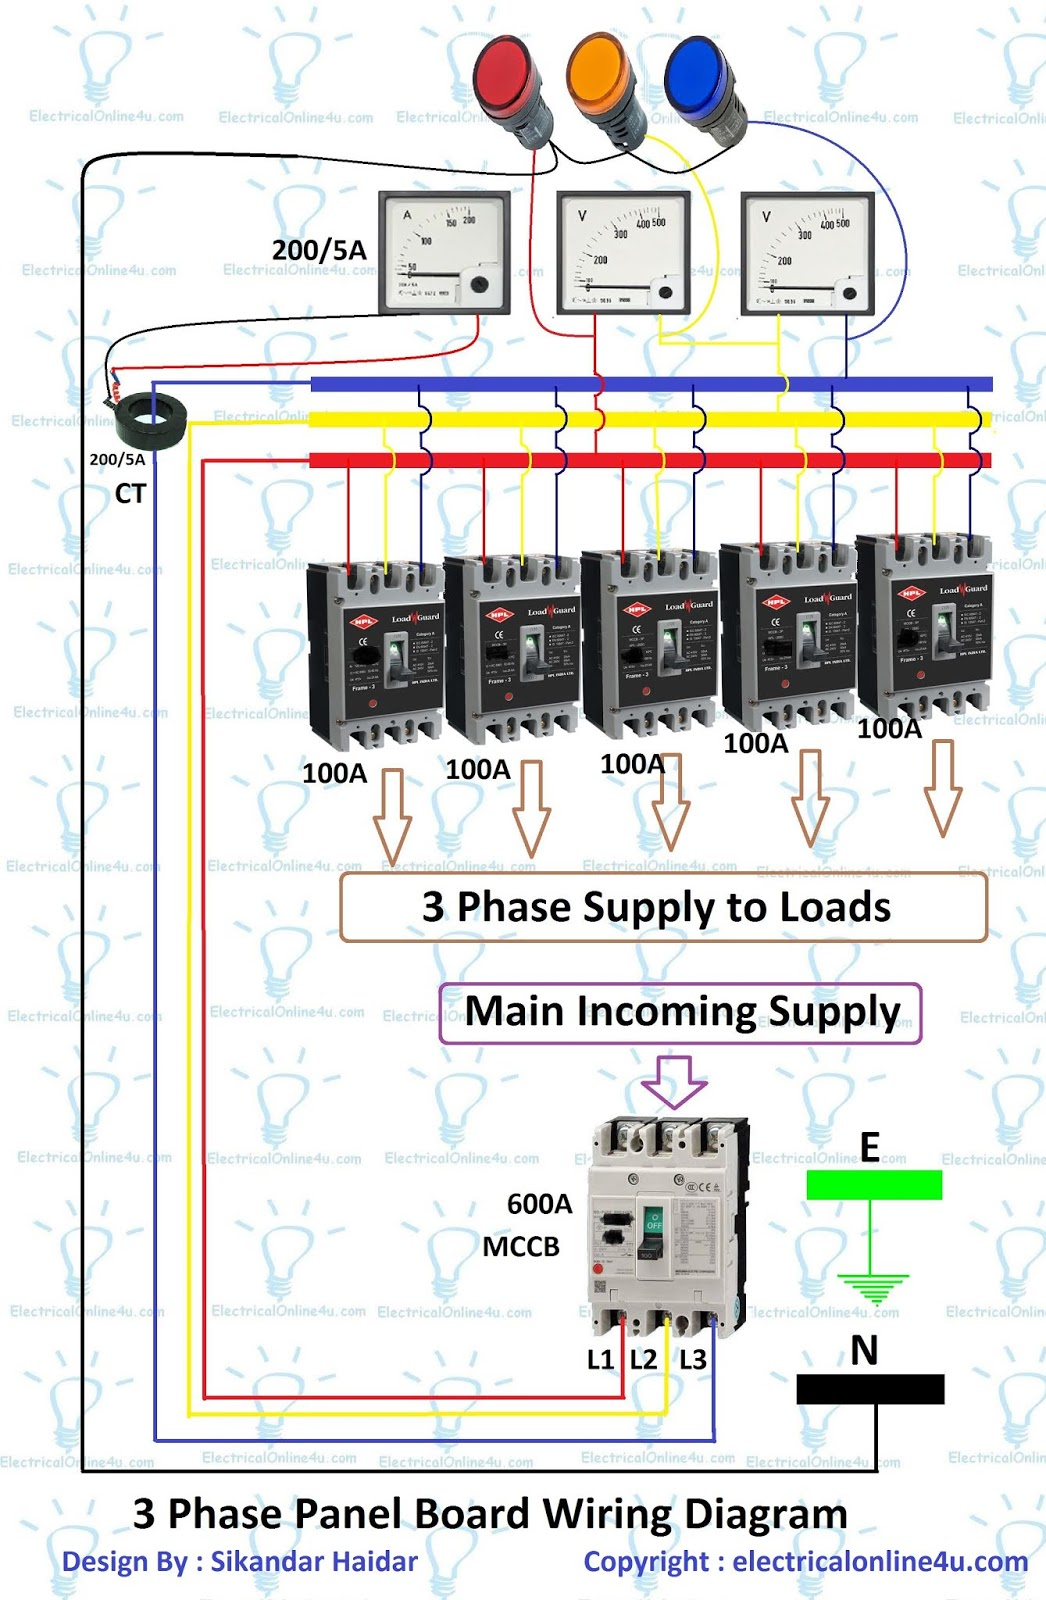 3 Phase Panel Board Wiring Diagram  Distribution Board